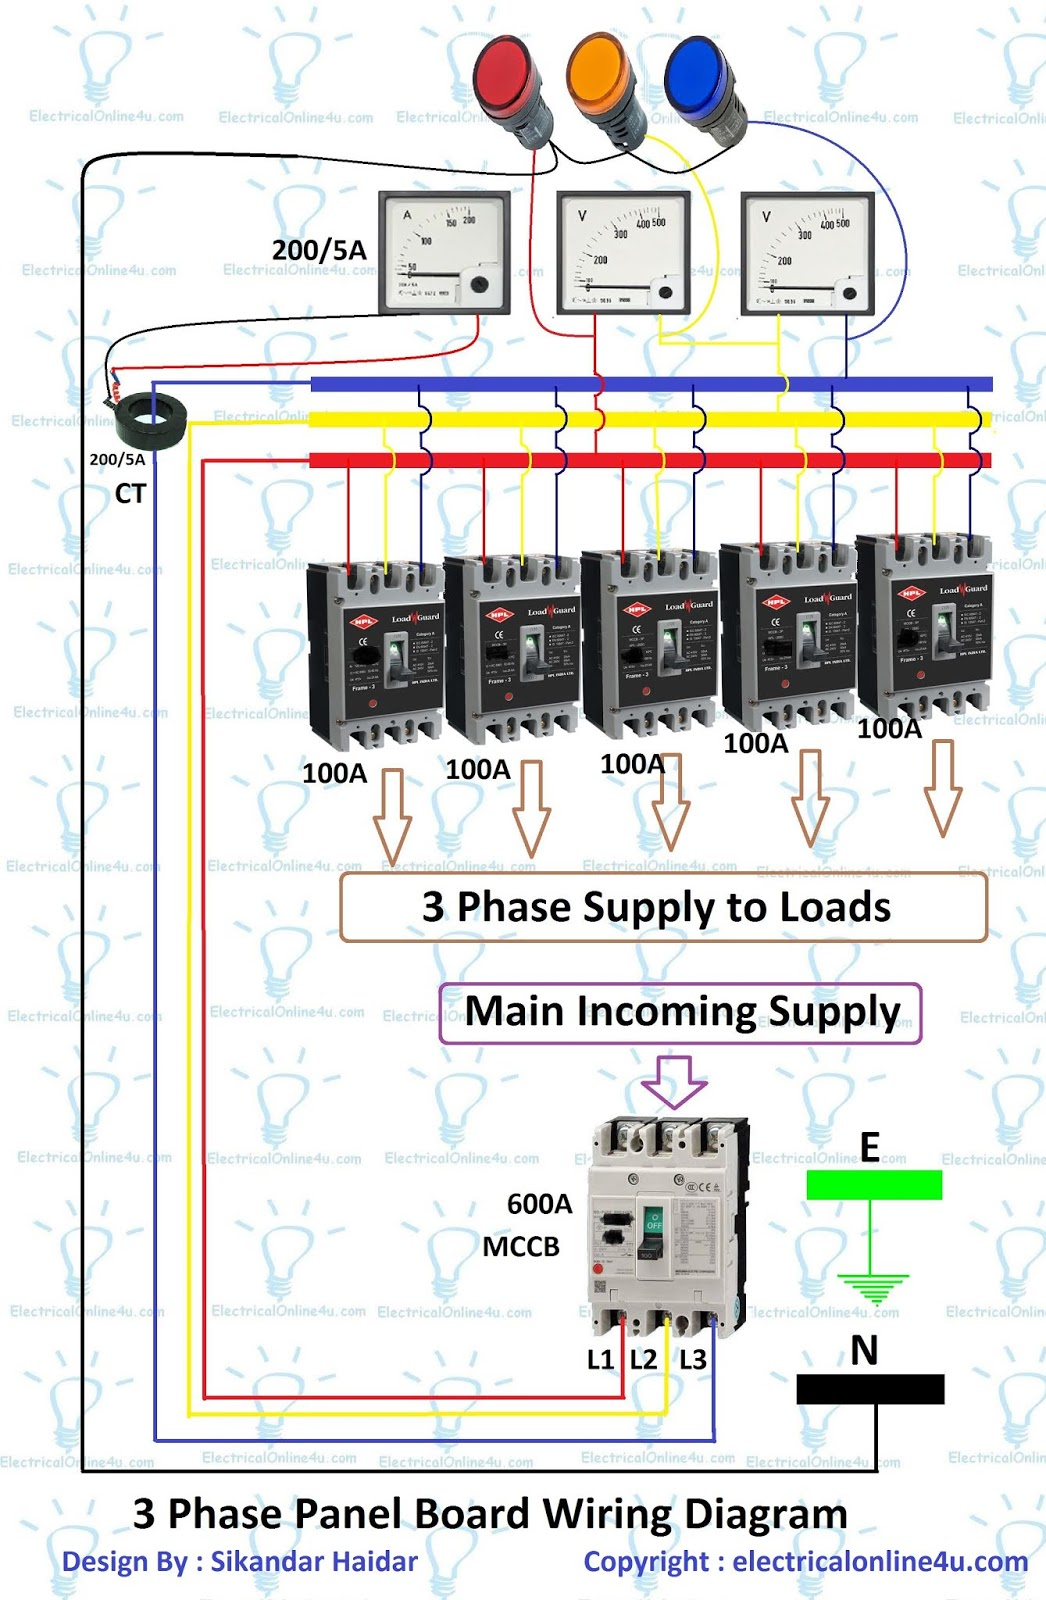 3 Phase Panel Board Wiring Diagram  Distribution Board